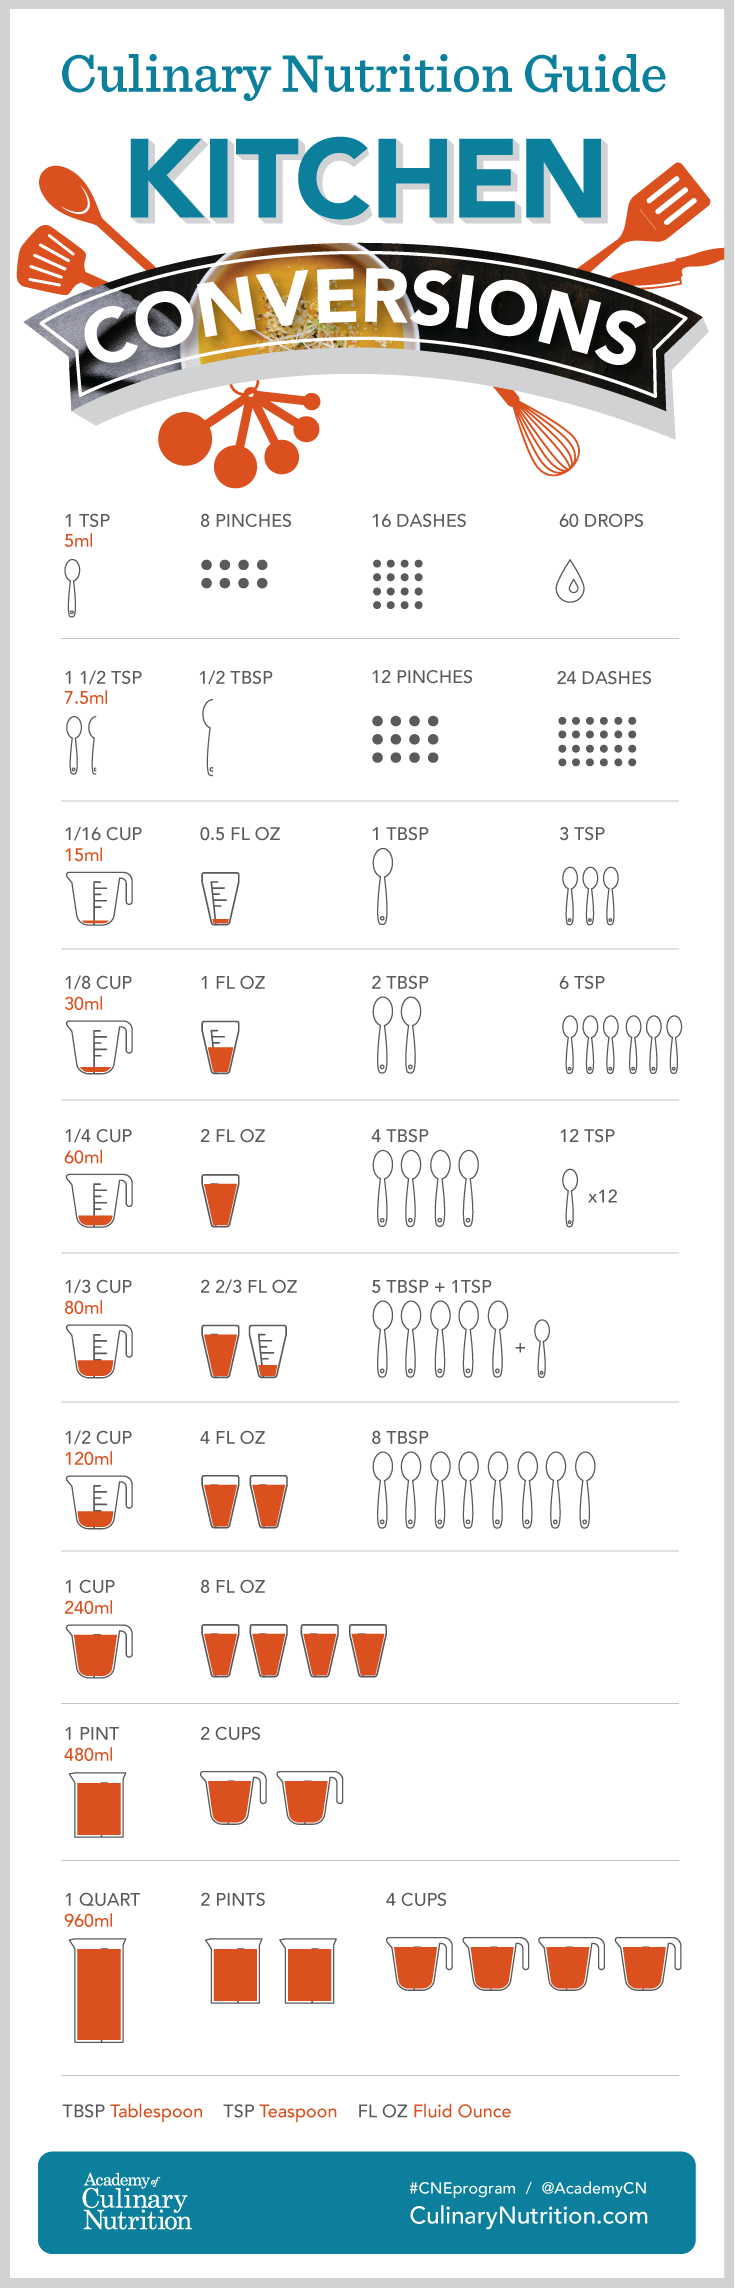 conversions chart cooking